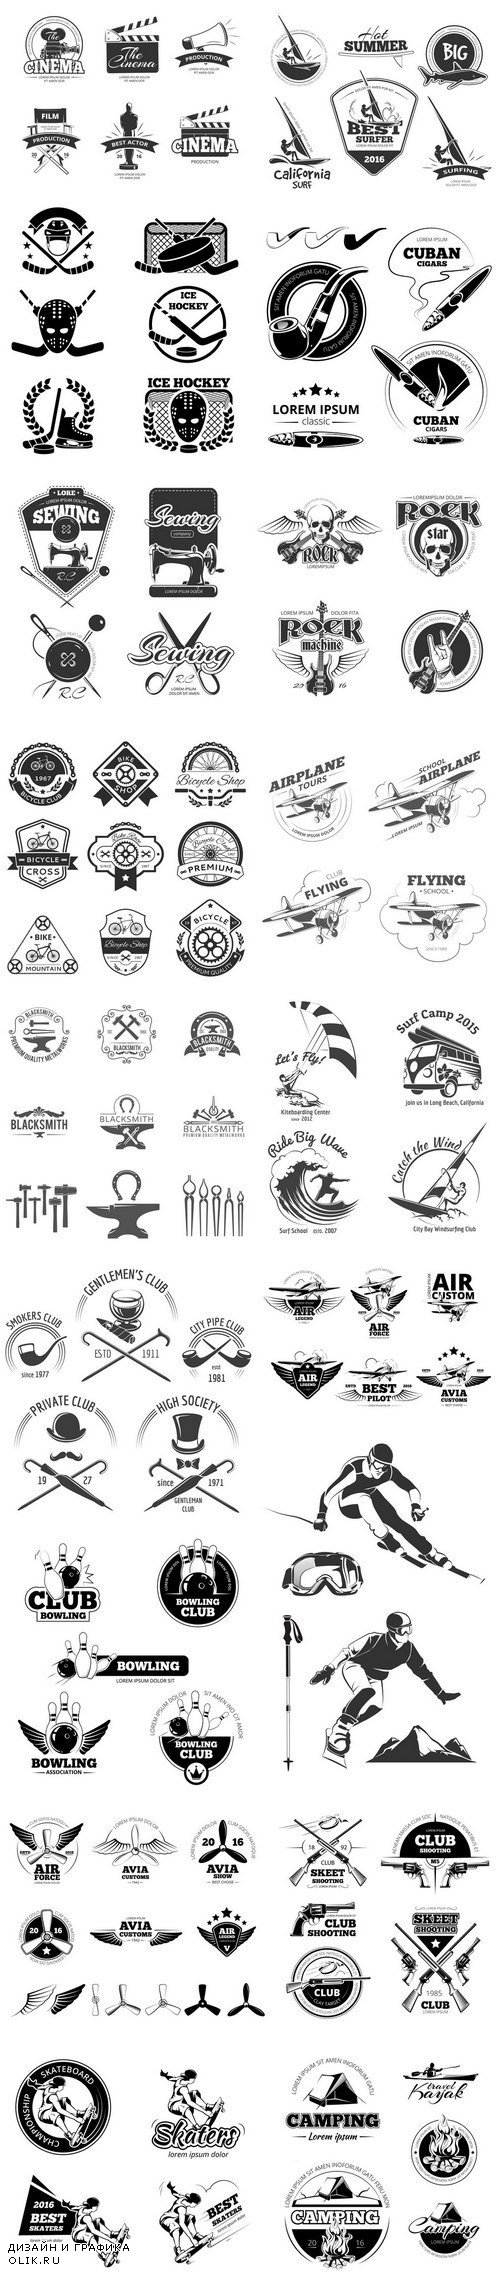 Emblem and logo set - 20xEPS